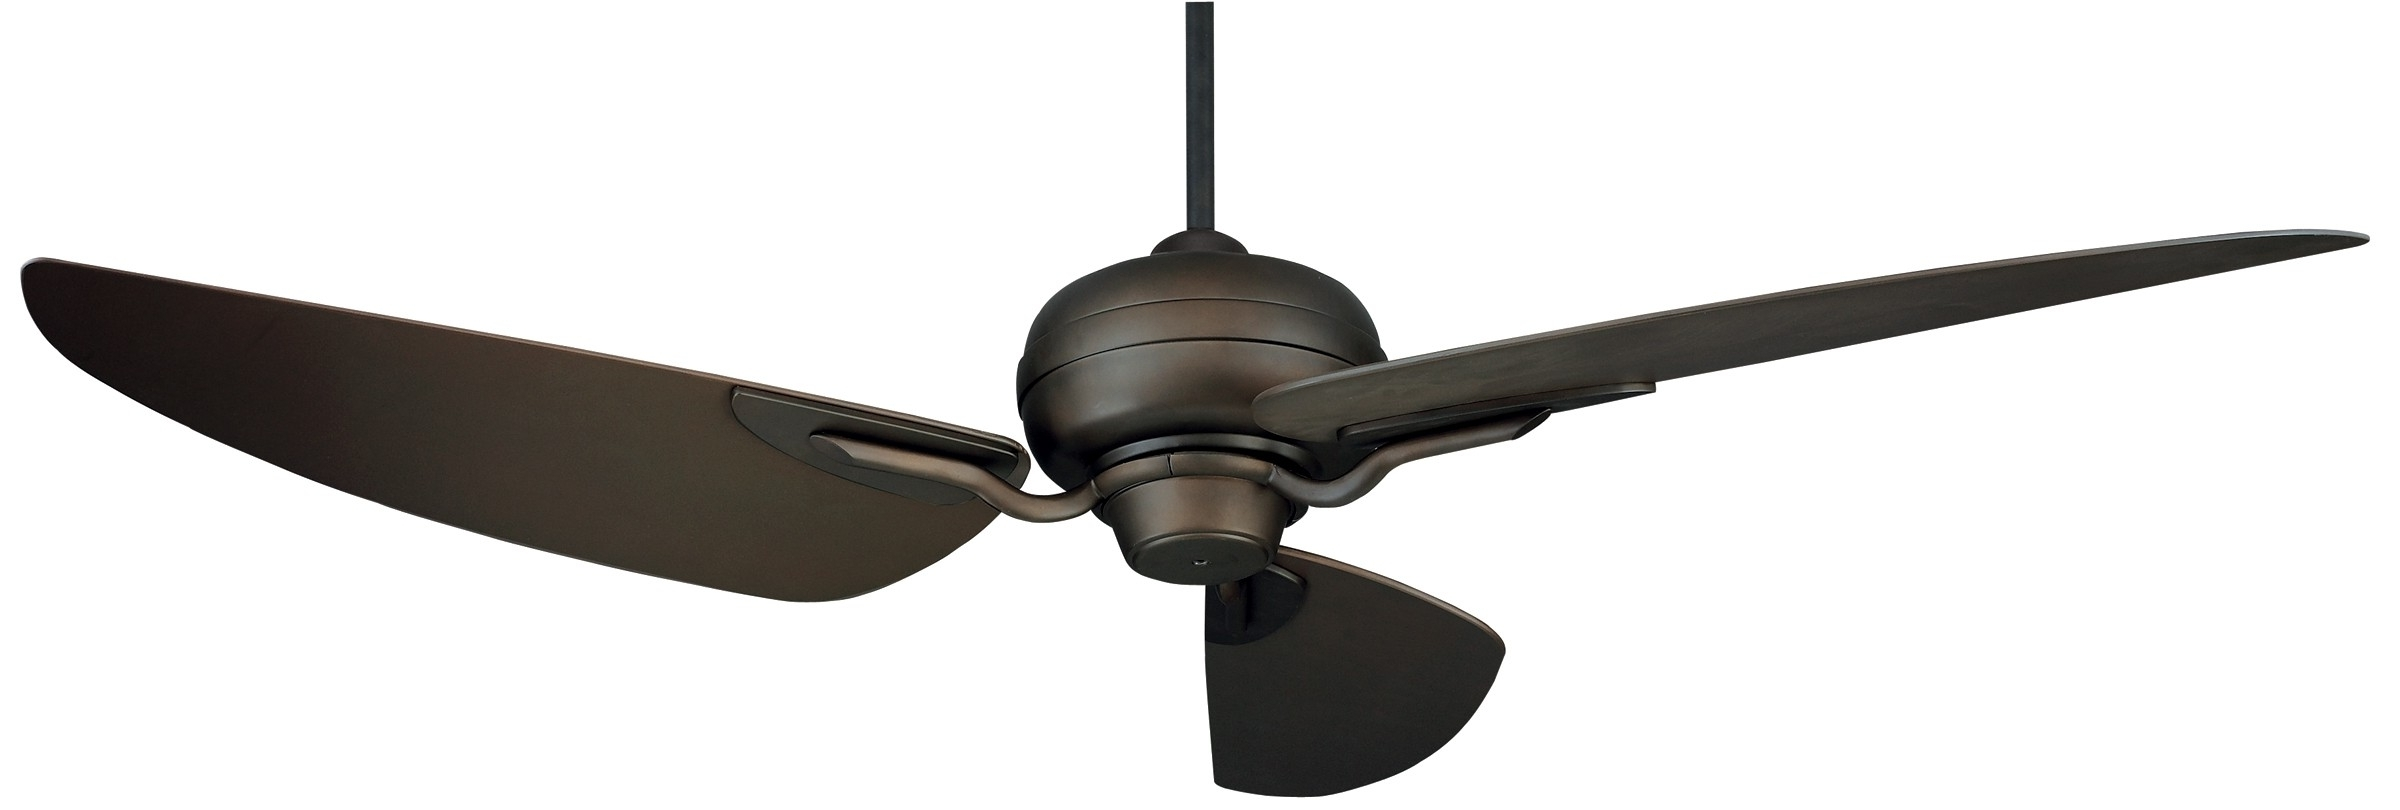 Outdoor Ceiling Fans With Damp Rated Lights Regarding Most Current Ceiling Fans : Black Friday Mega Hunter Ceiling Fan Blog Fans Wet (View 15 of 20)